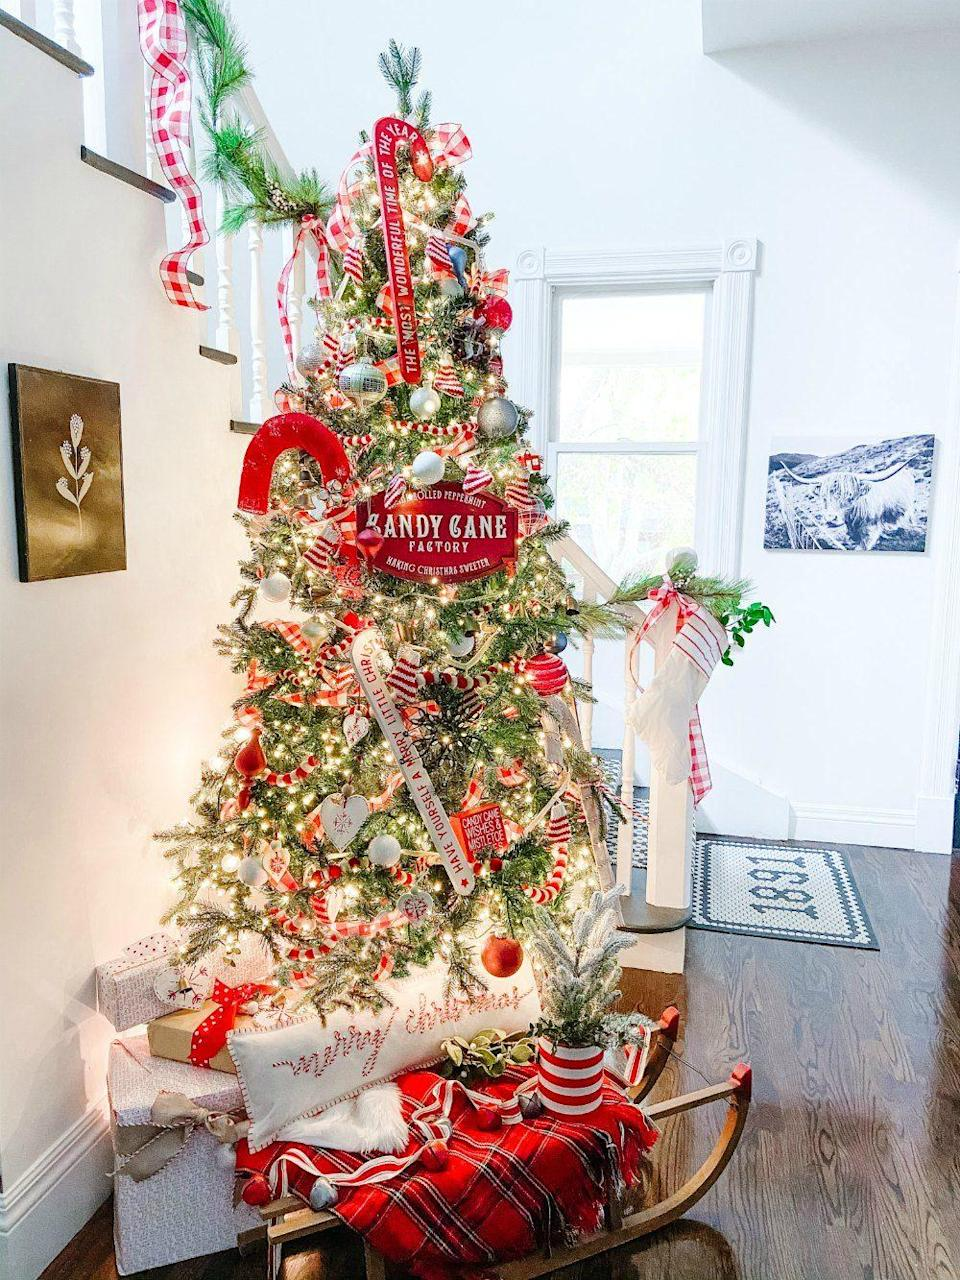 """<p>For another classic Christmas look with a nontraditional twist, switch out your regular red and white tree decorations for these candy cane-themed ones. </p><p><strong><em>Get the tutorial at <a href=""""https://tatertotsandjello.com/candy-cane-themed-christmas-tree/"""" rel=""""nofollow noopener"""" target=""""_blank"""" data-ylk=""""slk:Tatertots & Jello"""" class=""""link rapid-noclick-resp"""">Tatertots & Jello</a>.</em></strong></p><p><a class=""""link rapid-noclick-resp"""" href=""""https://www.amazon.com/Kurt-Adler-Candy-Ornament-Piece/dp/B002TH3IHY?tag=syn-yahoo-20&ascsubtag=%5Bartid%7C10070.g.2025%5Bsrc%7Cyahoo-us"""" rel=""""nofollow noopener"""" target=""""_blank"""" data-ylk=""""slk:BUY CANDY CANE DECORATIONS"""">BUY CANDY CANE DECORATIONS</a><br></p>"""